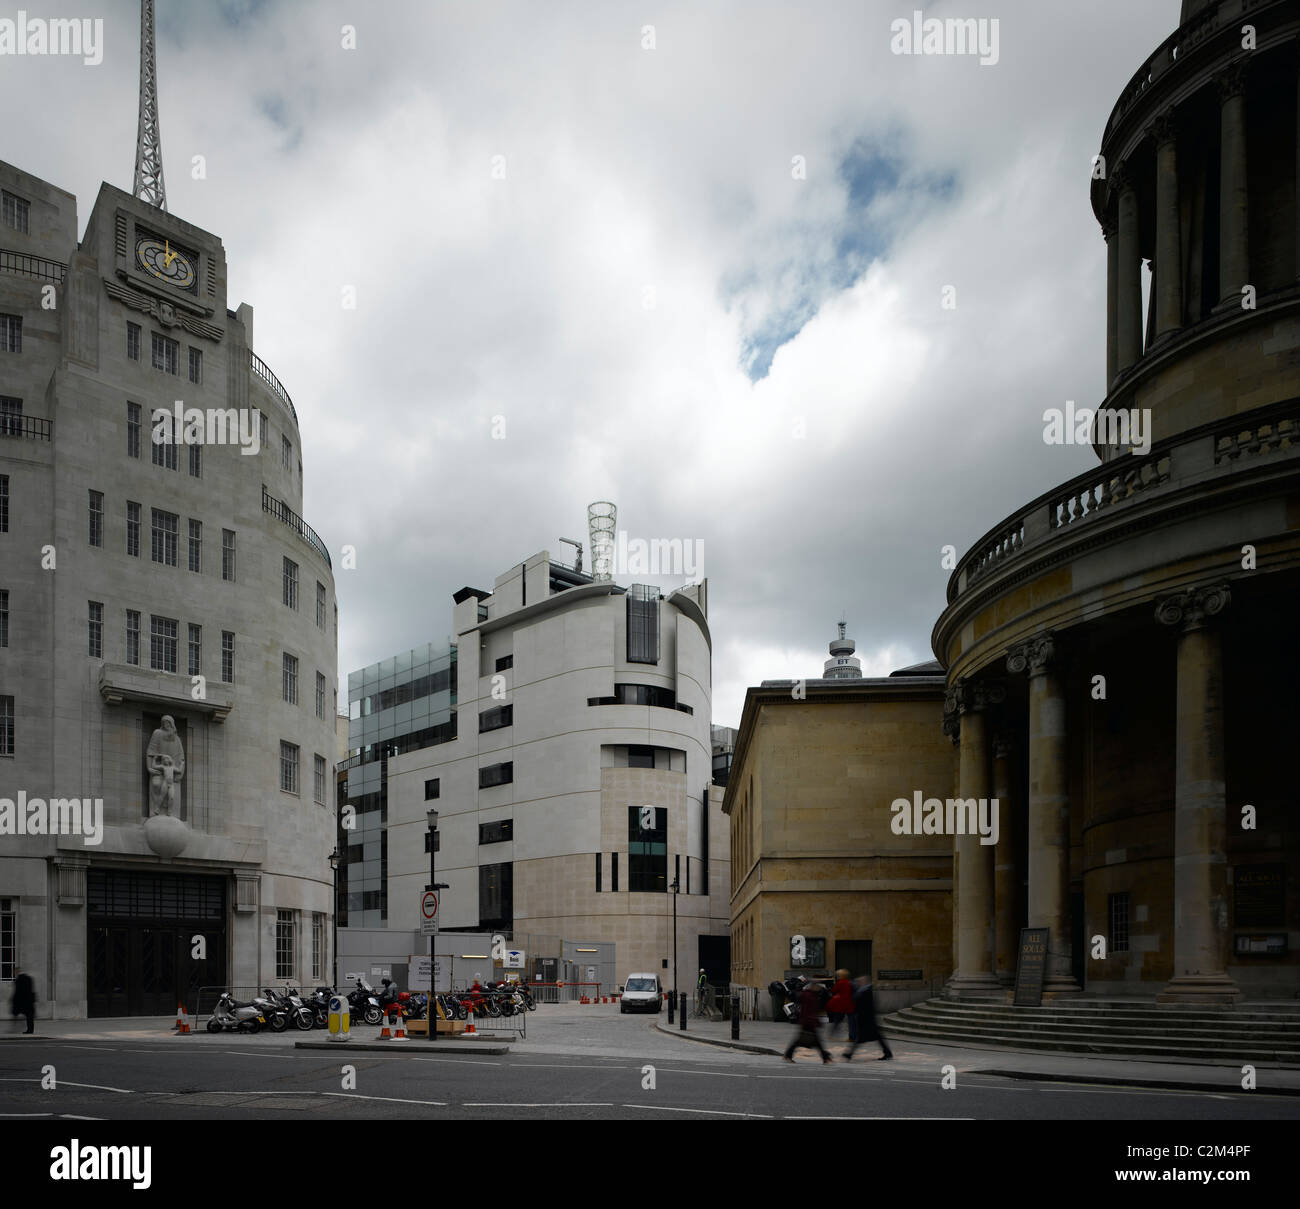 BBC Broadcasting House and Portland Place, London. Stock Photo